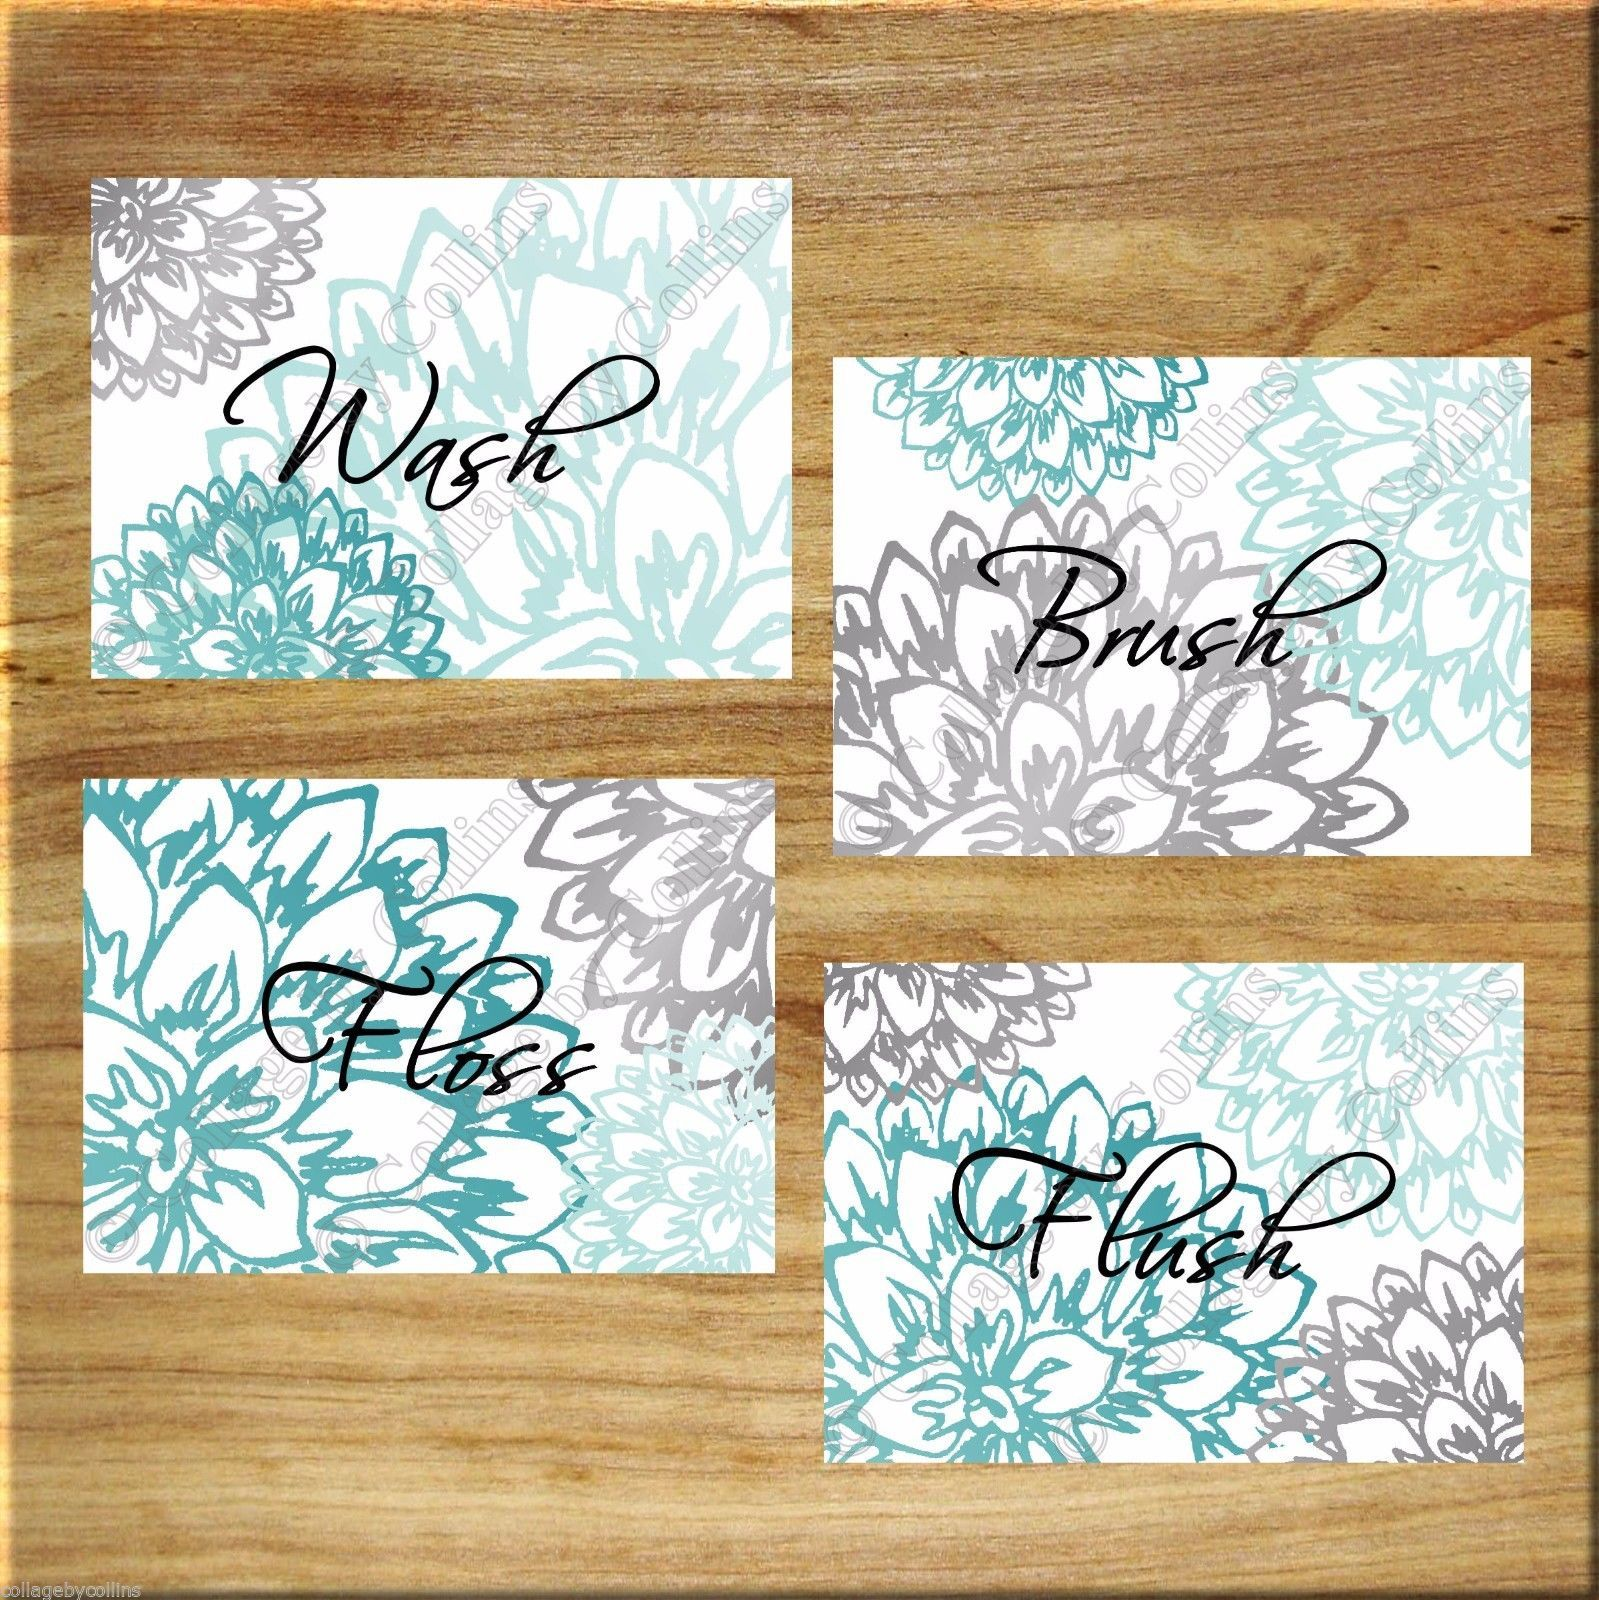 Primary image for Teal Aqua Gray Wall Art Prints Bath Rules Quotes Bathroom Decor Floral Flowers